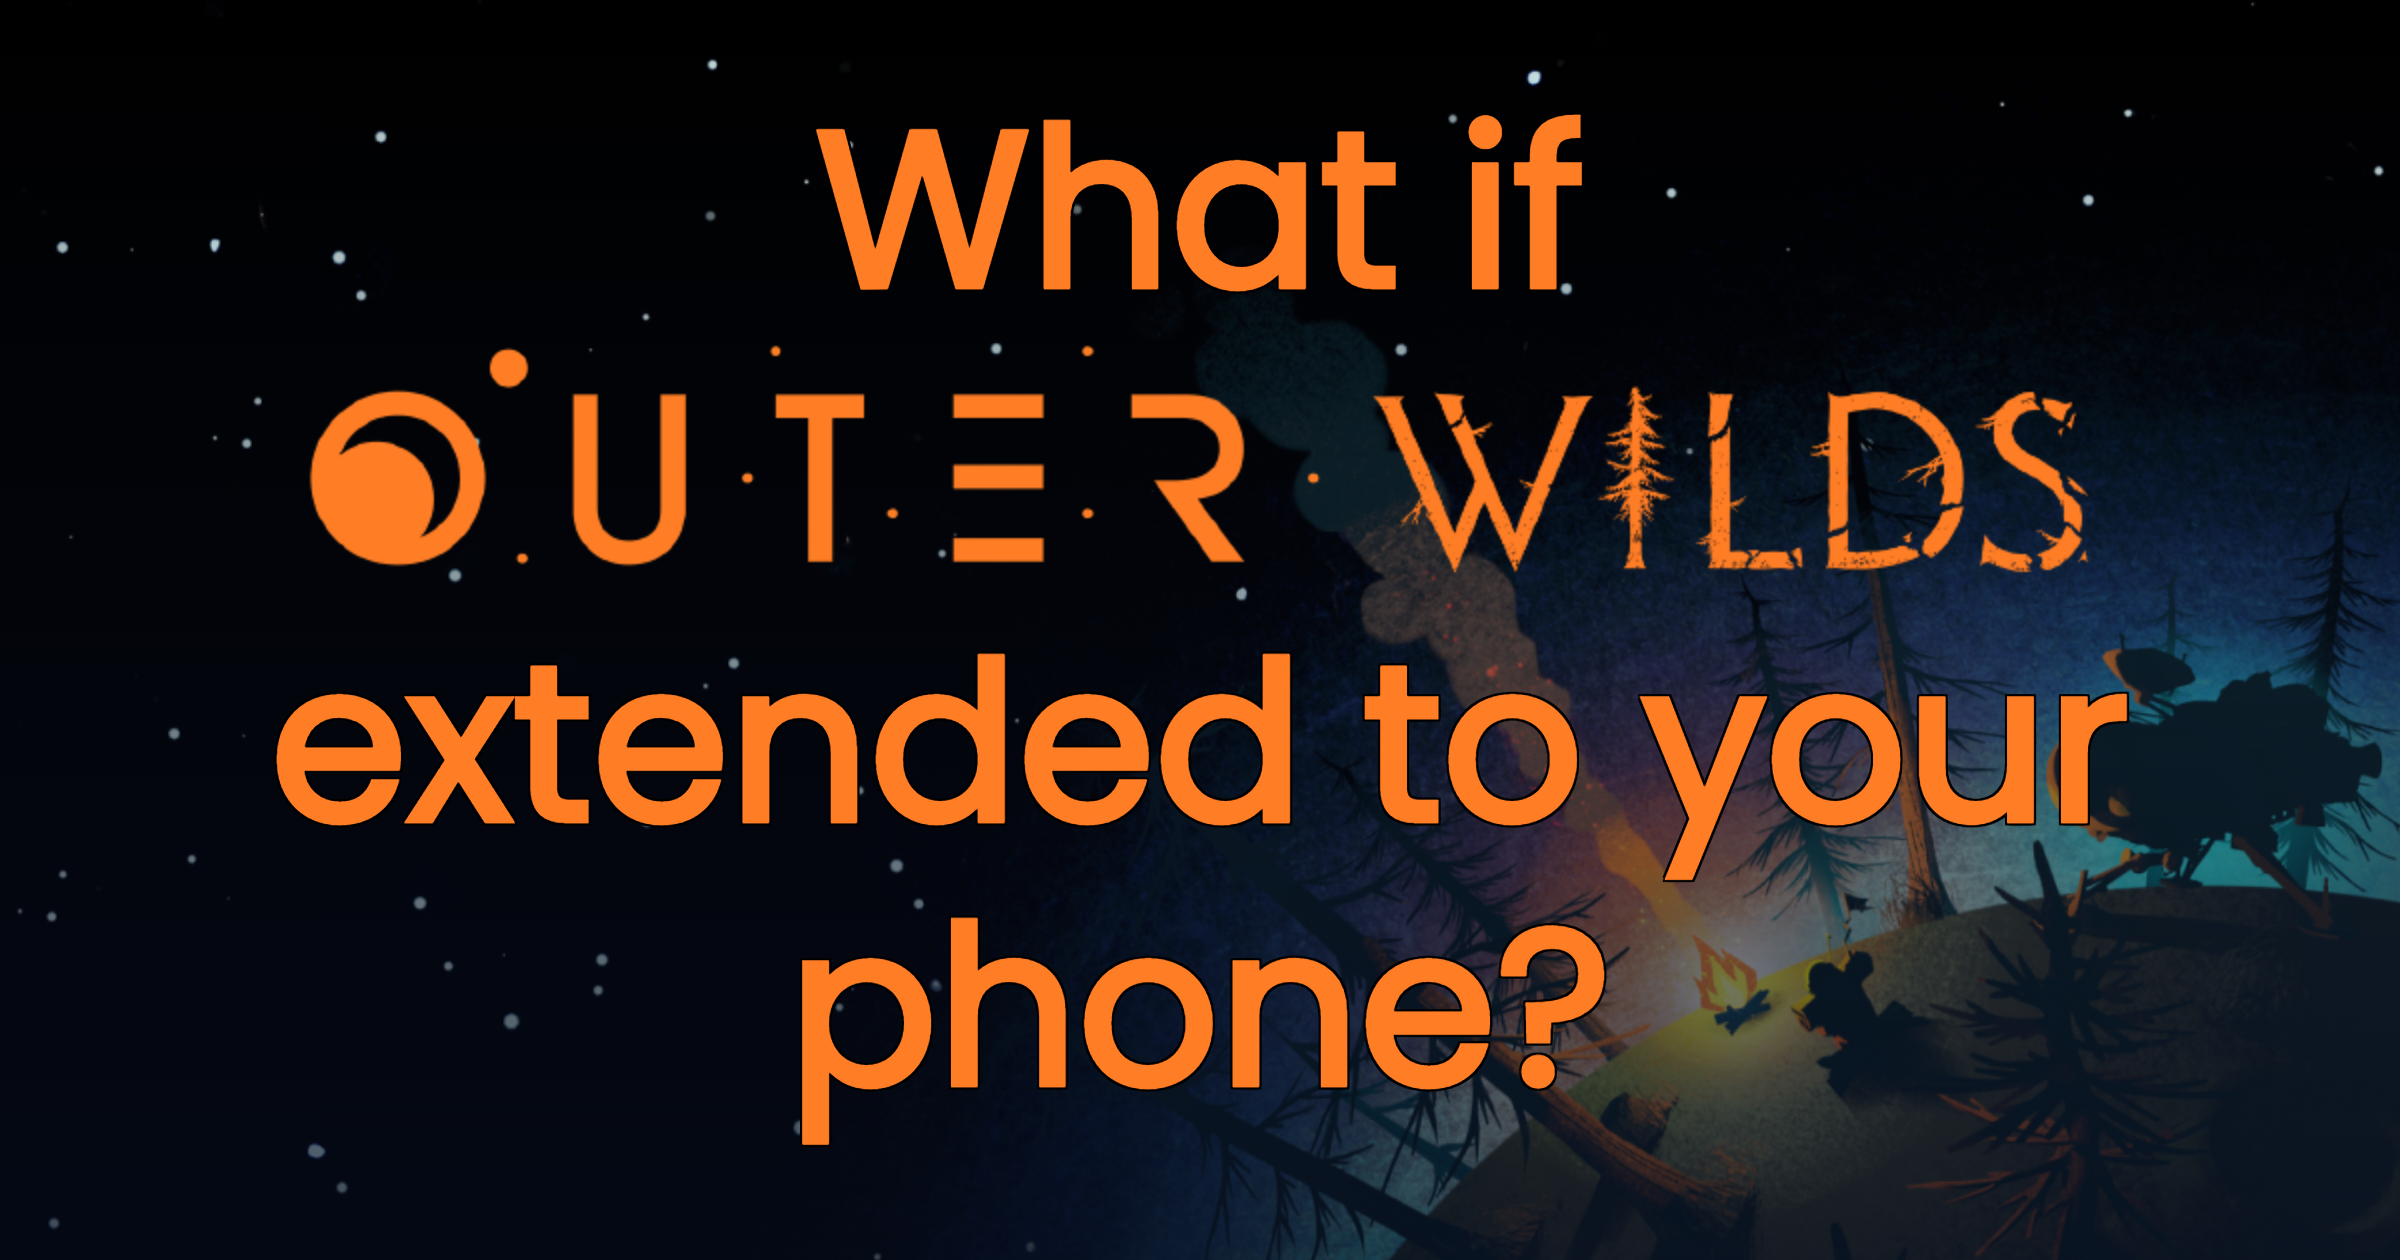 """Promotional image for """"What if?"""" Outer Wilds"""